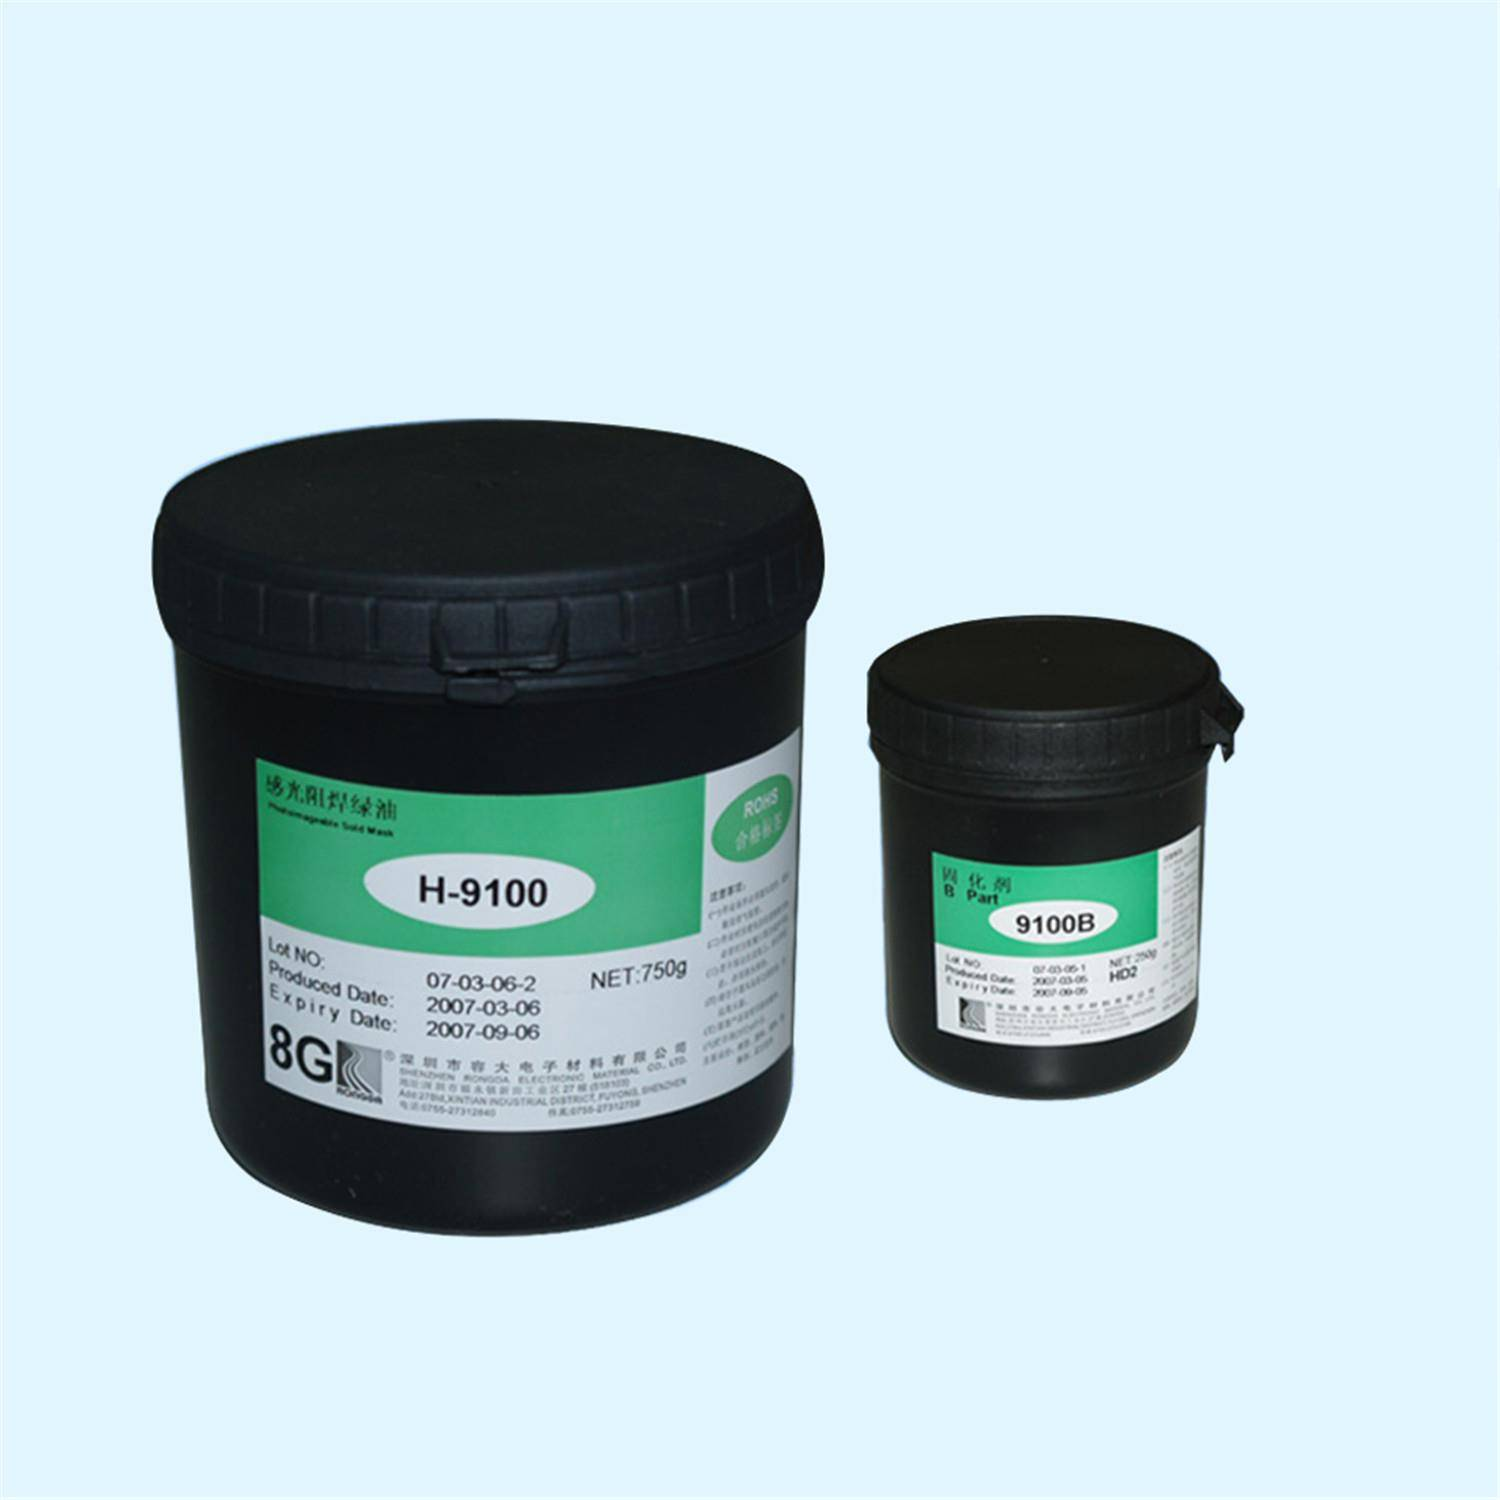 Liquid photoimageable solder resist ink H-9100